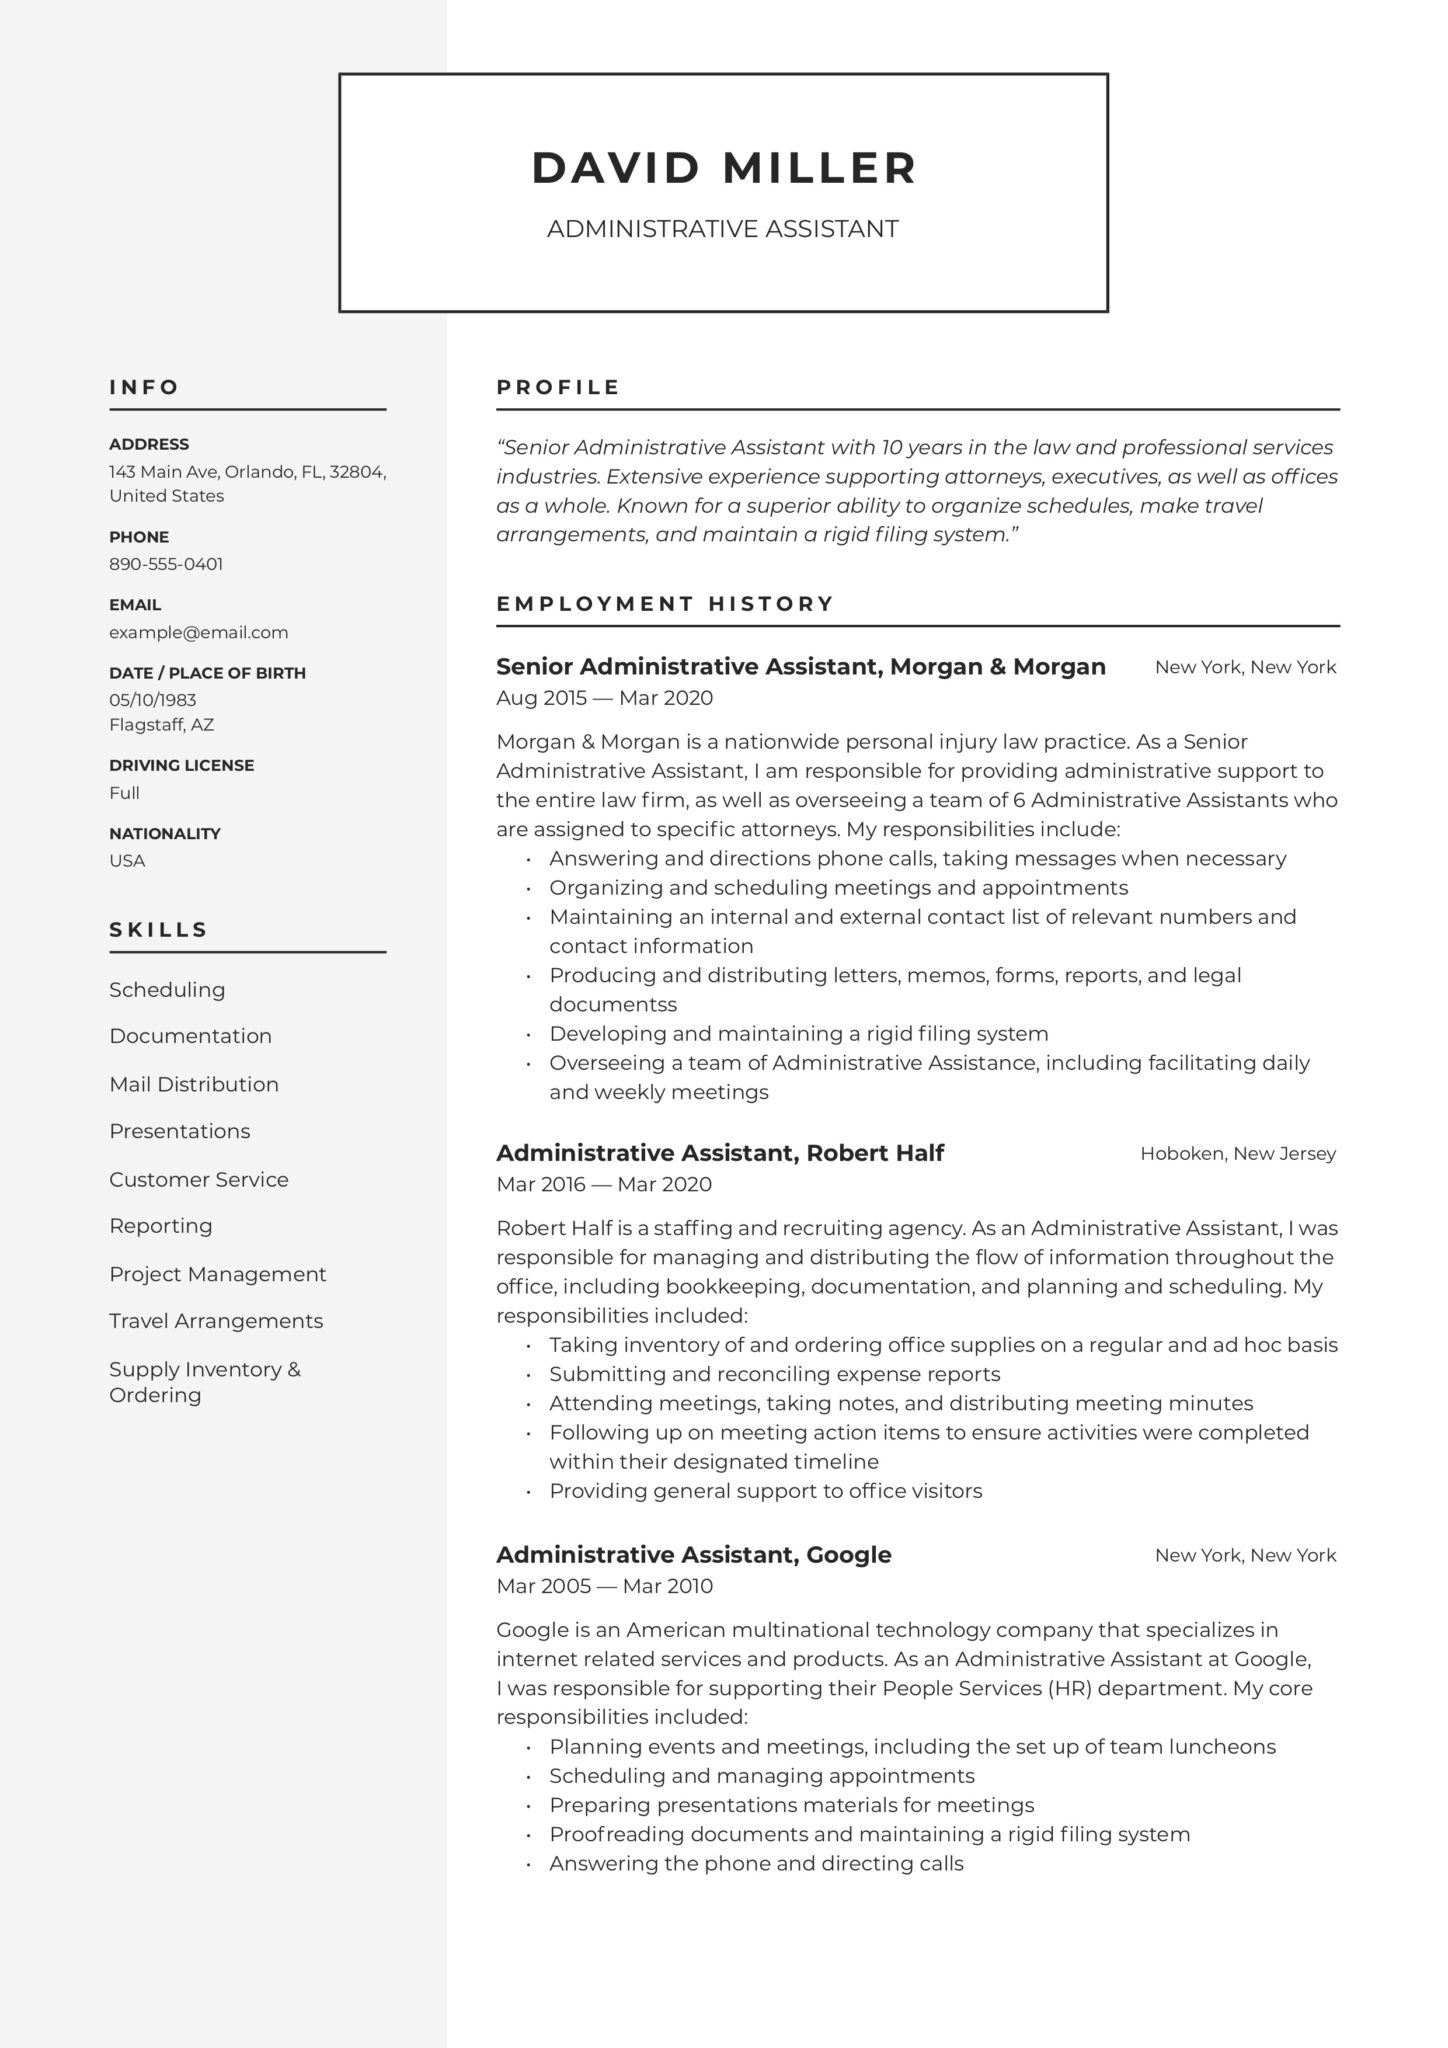 free administrative assistant resumes writing guide pdf resume examples scaled health Resume Administrative Assistant Resume Examples 2020